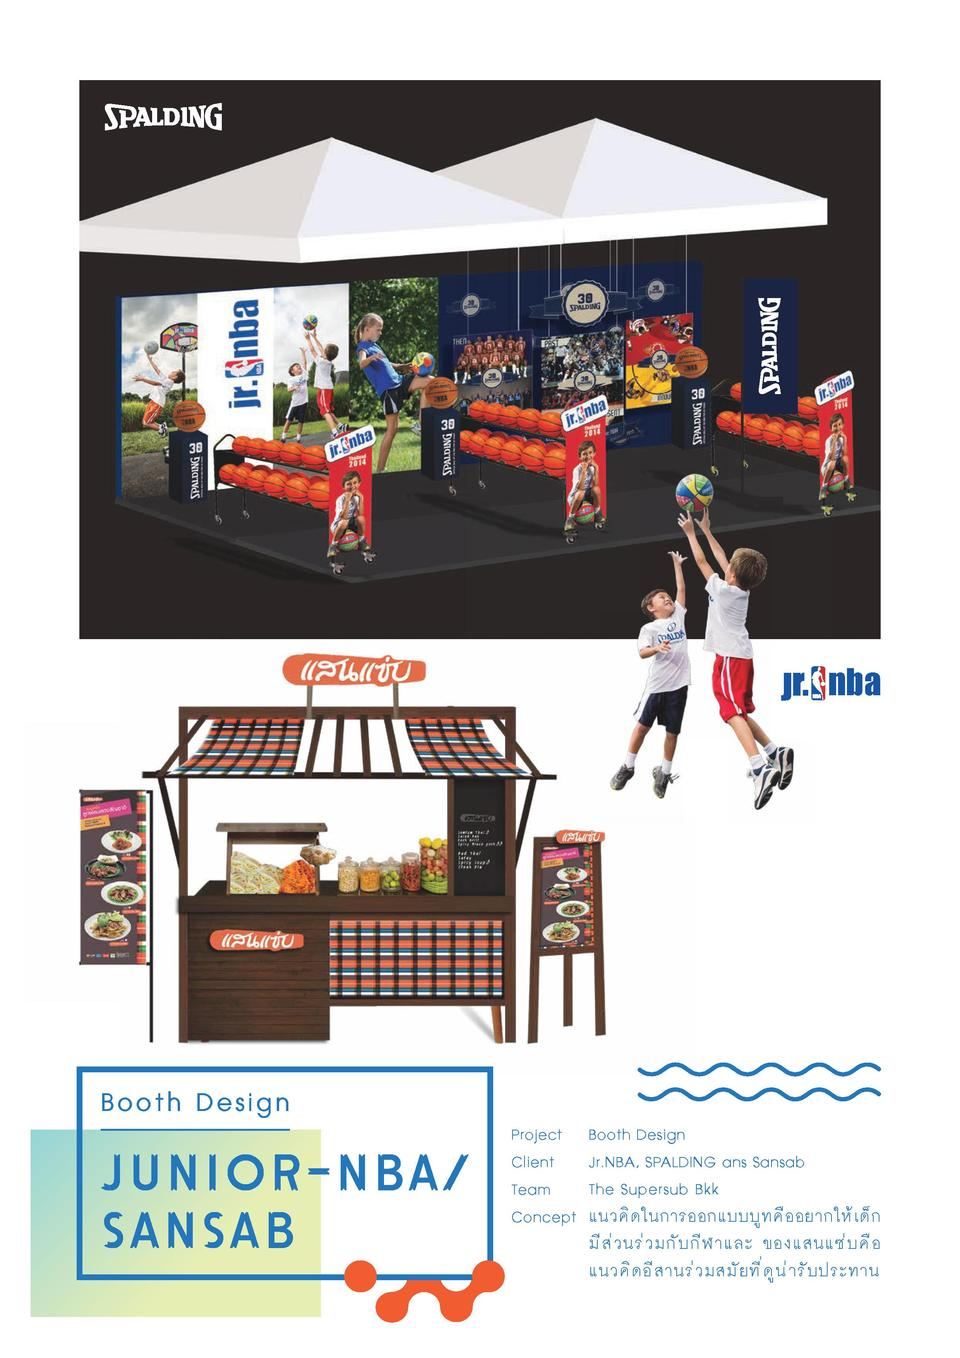 nba  Booth Design  junior-nba  sansab  Project Client Team Concept  Booth Design Jr.NBA, SPALDING ans Sansab The Supersub ...